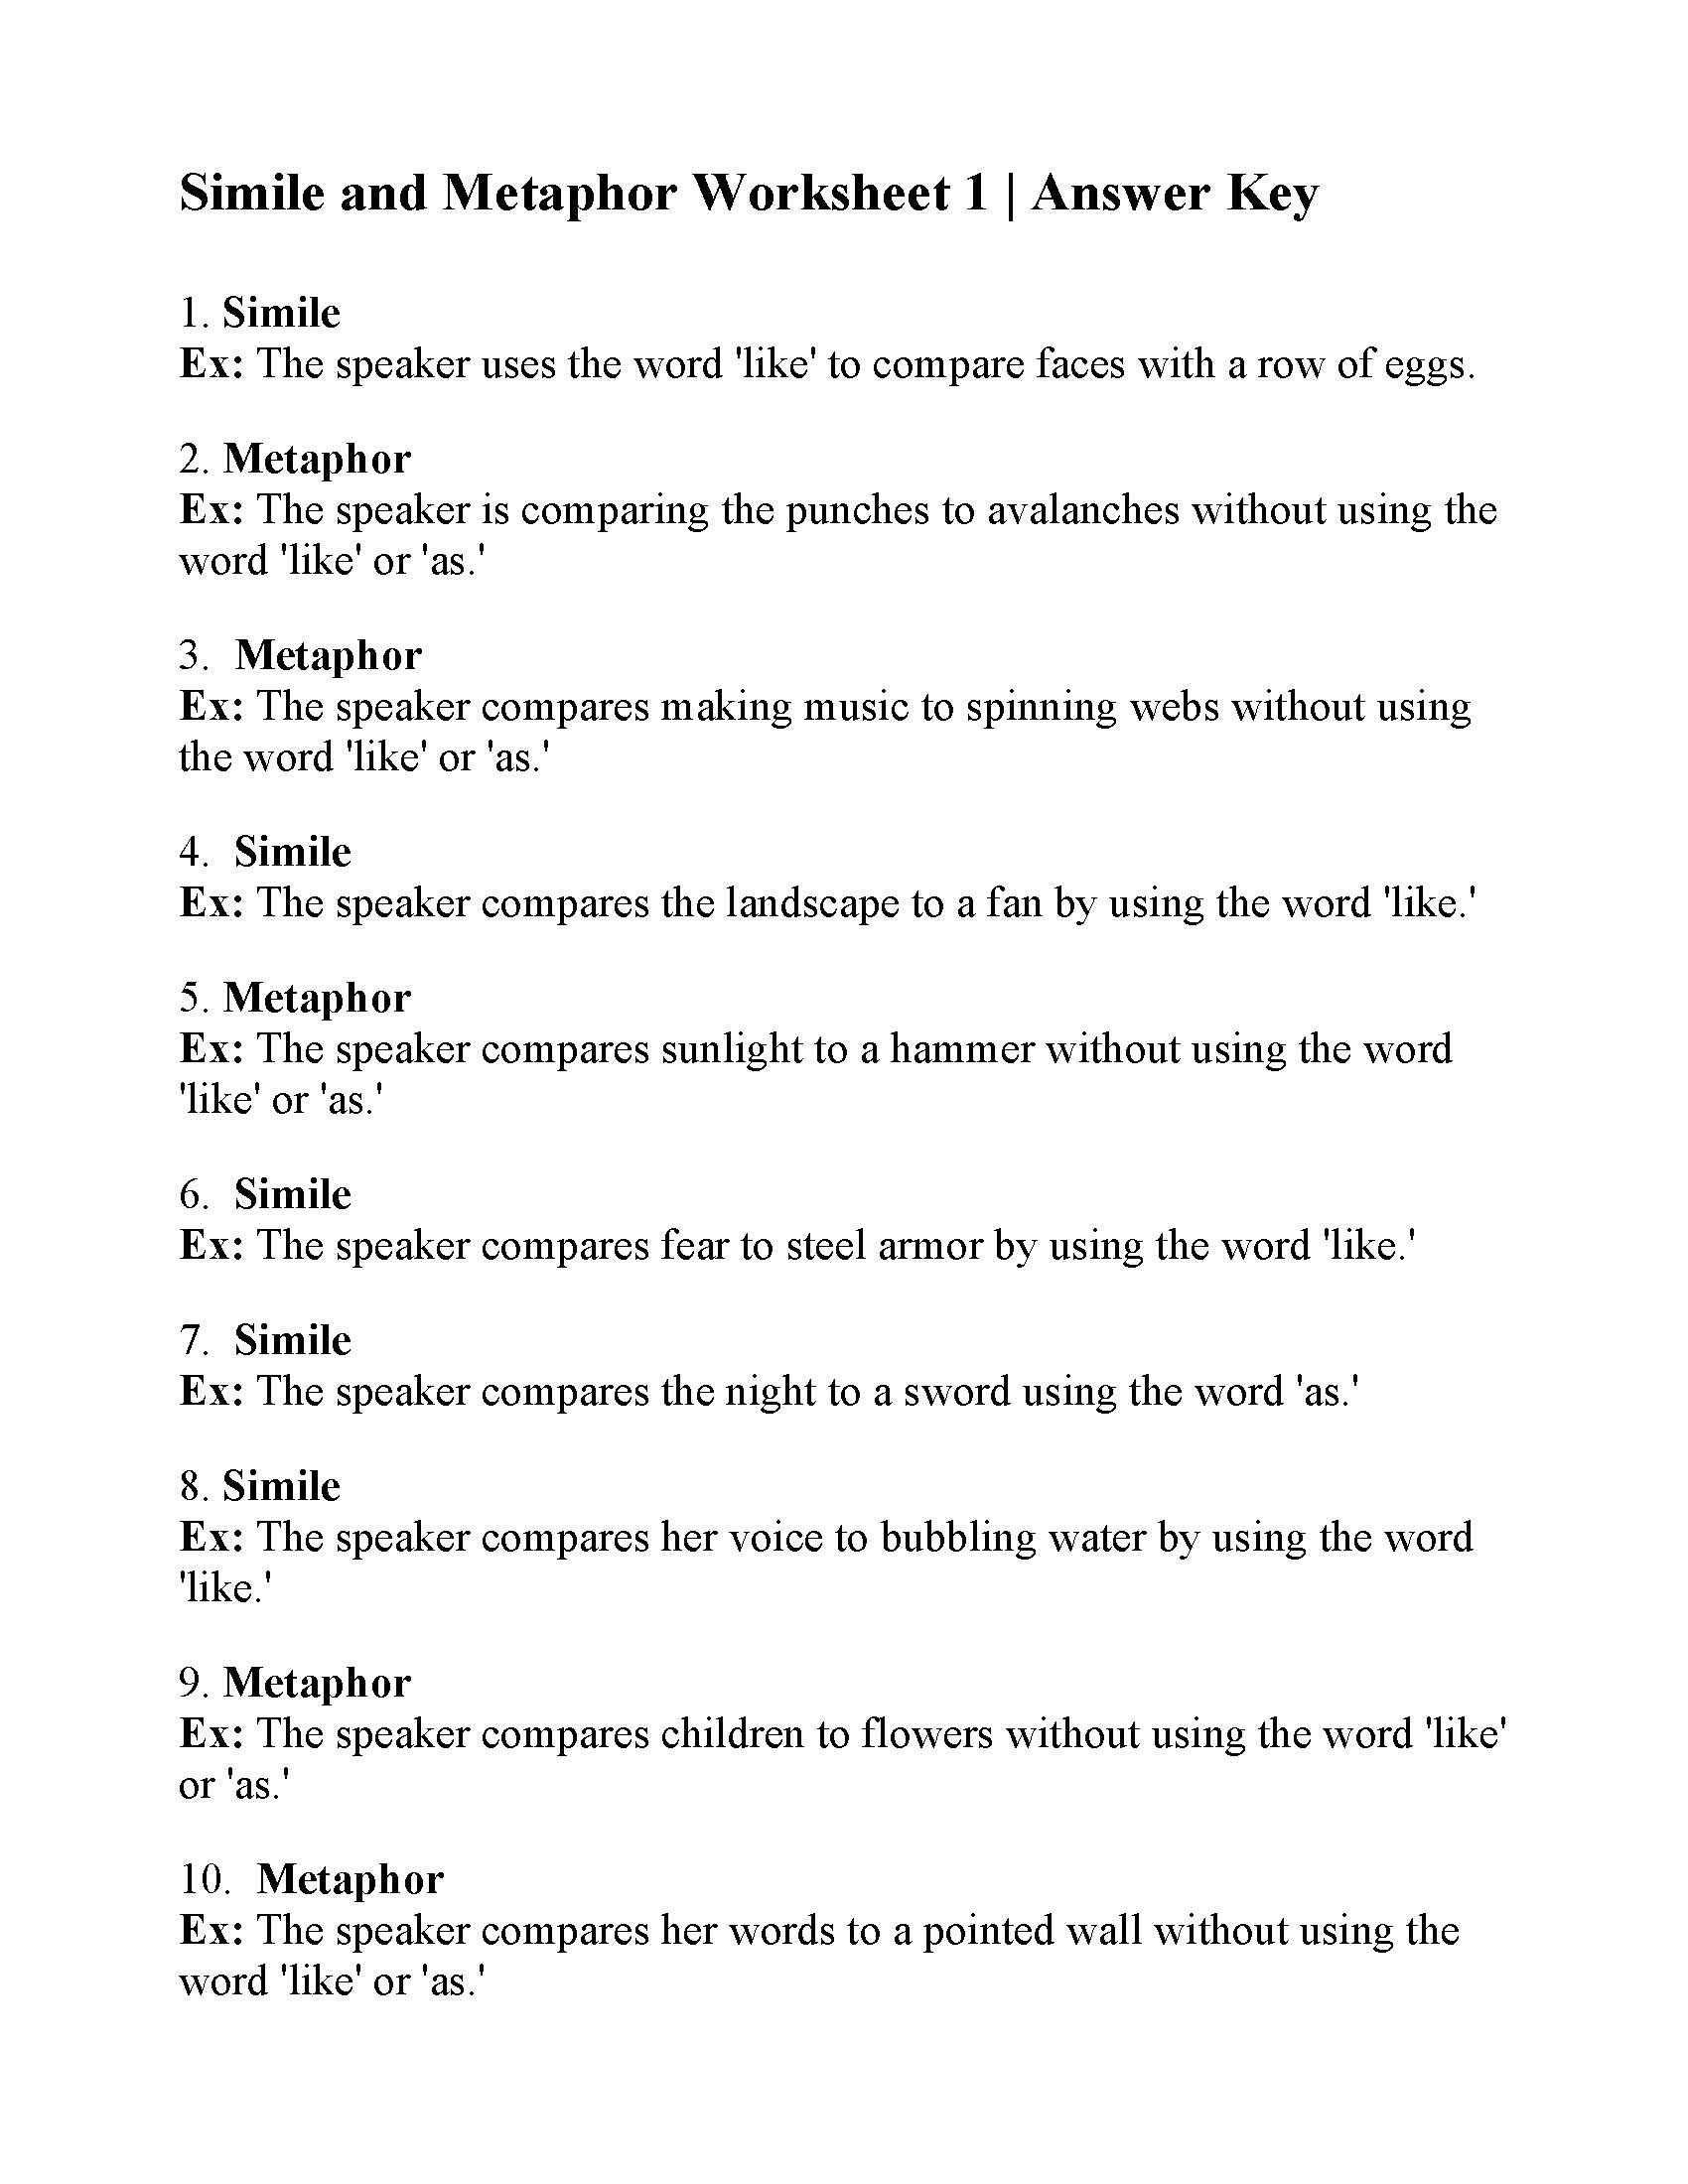 Metaphor Worksheet Middle School Simile and Metaphor Worksheet 1